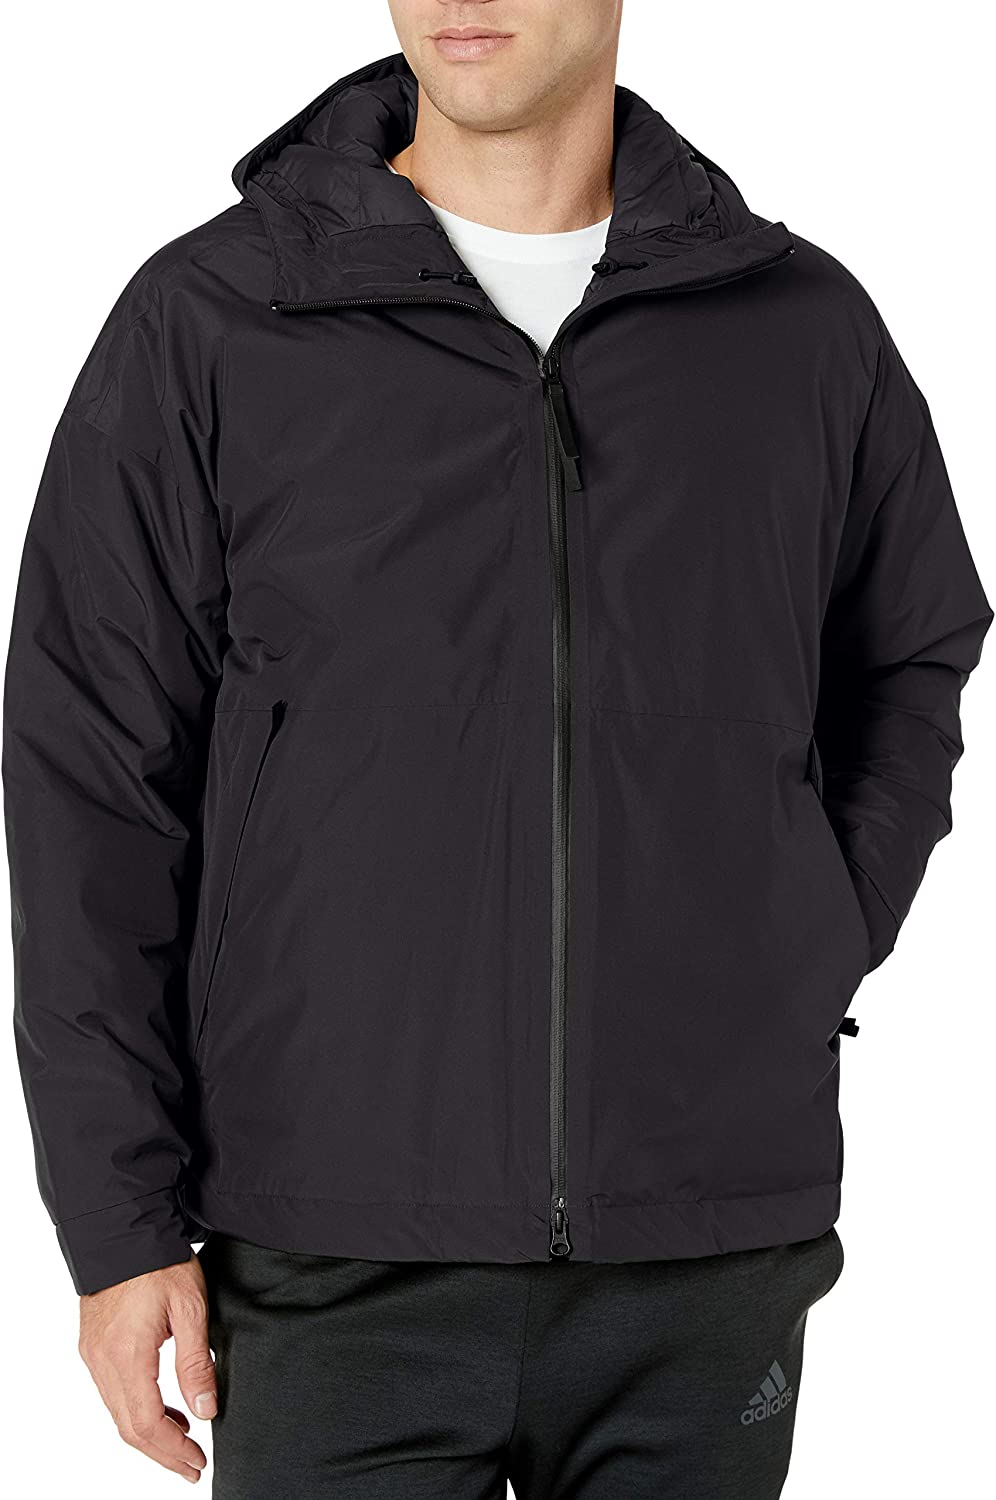 adidas outdoor Mens Winter Ranking TOP15 Insulated Urban Ranking TOP18